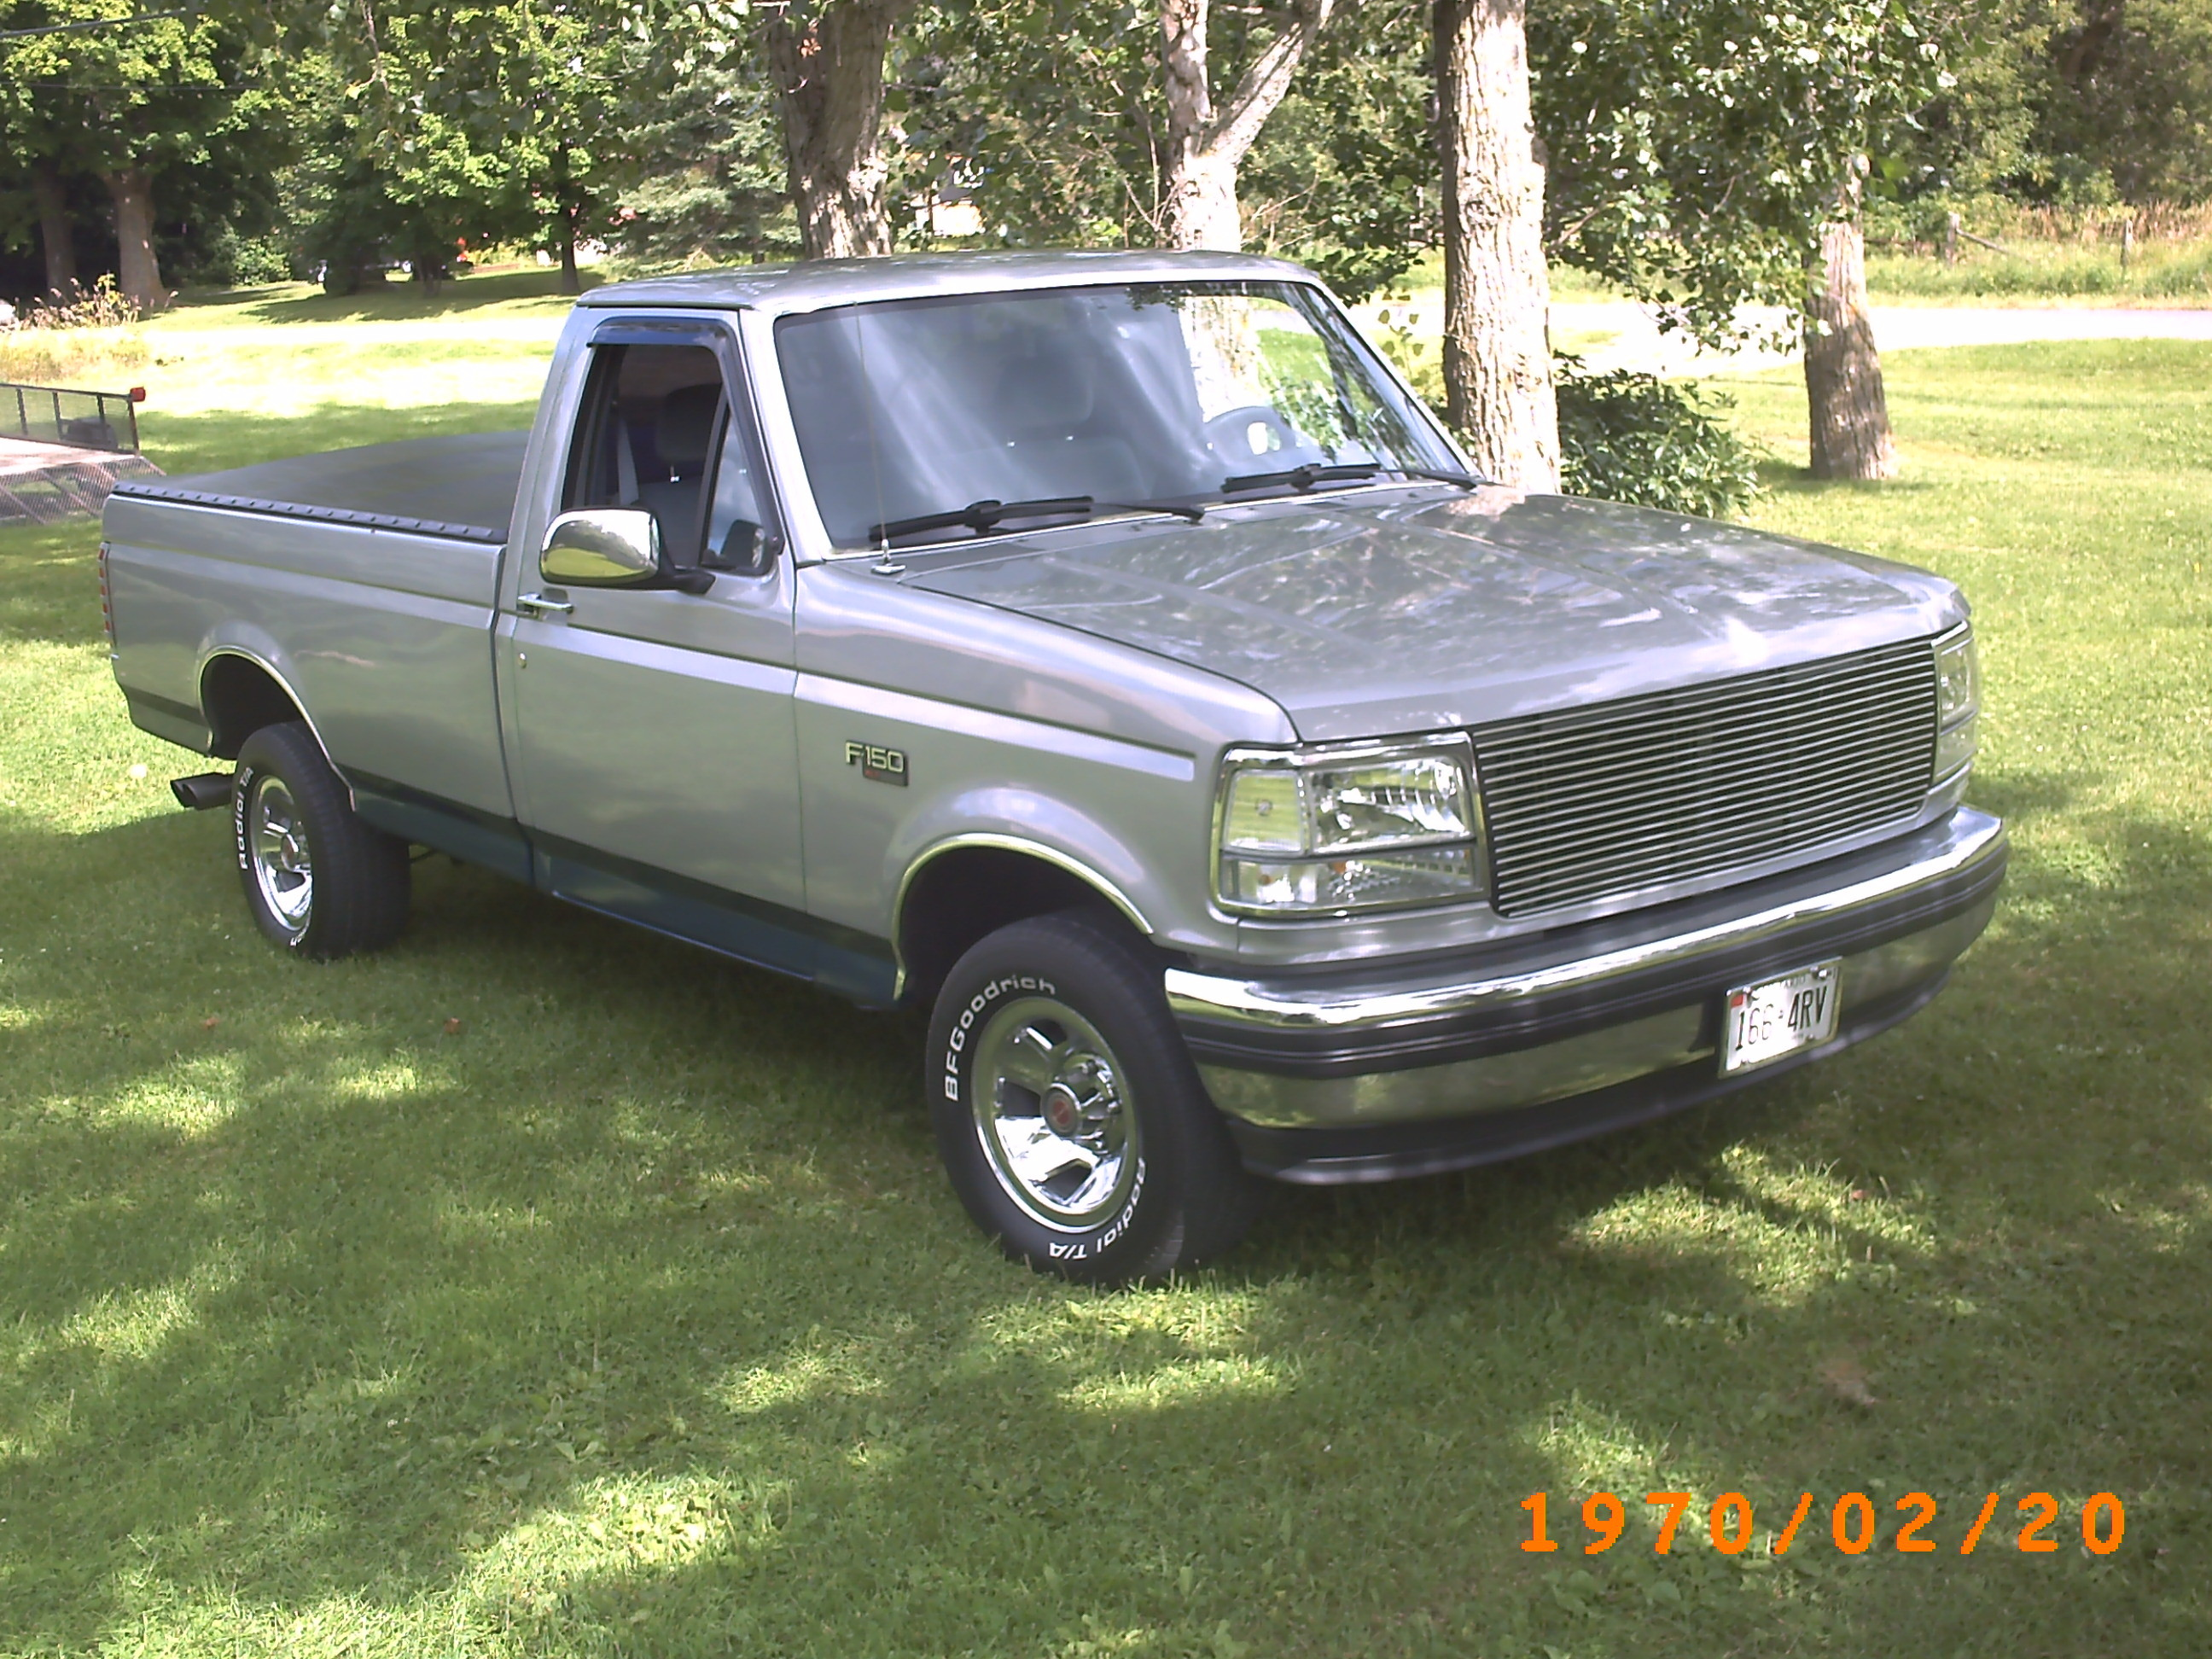 fordtruck24's 1992 Ford F150 Regular Cab